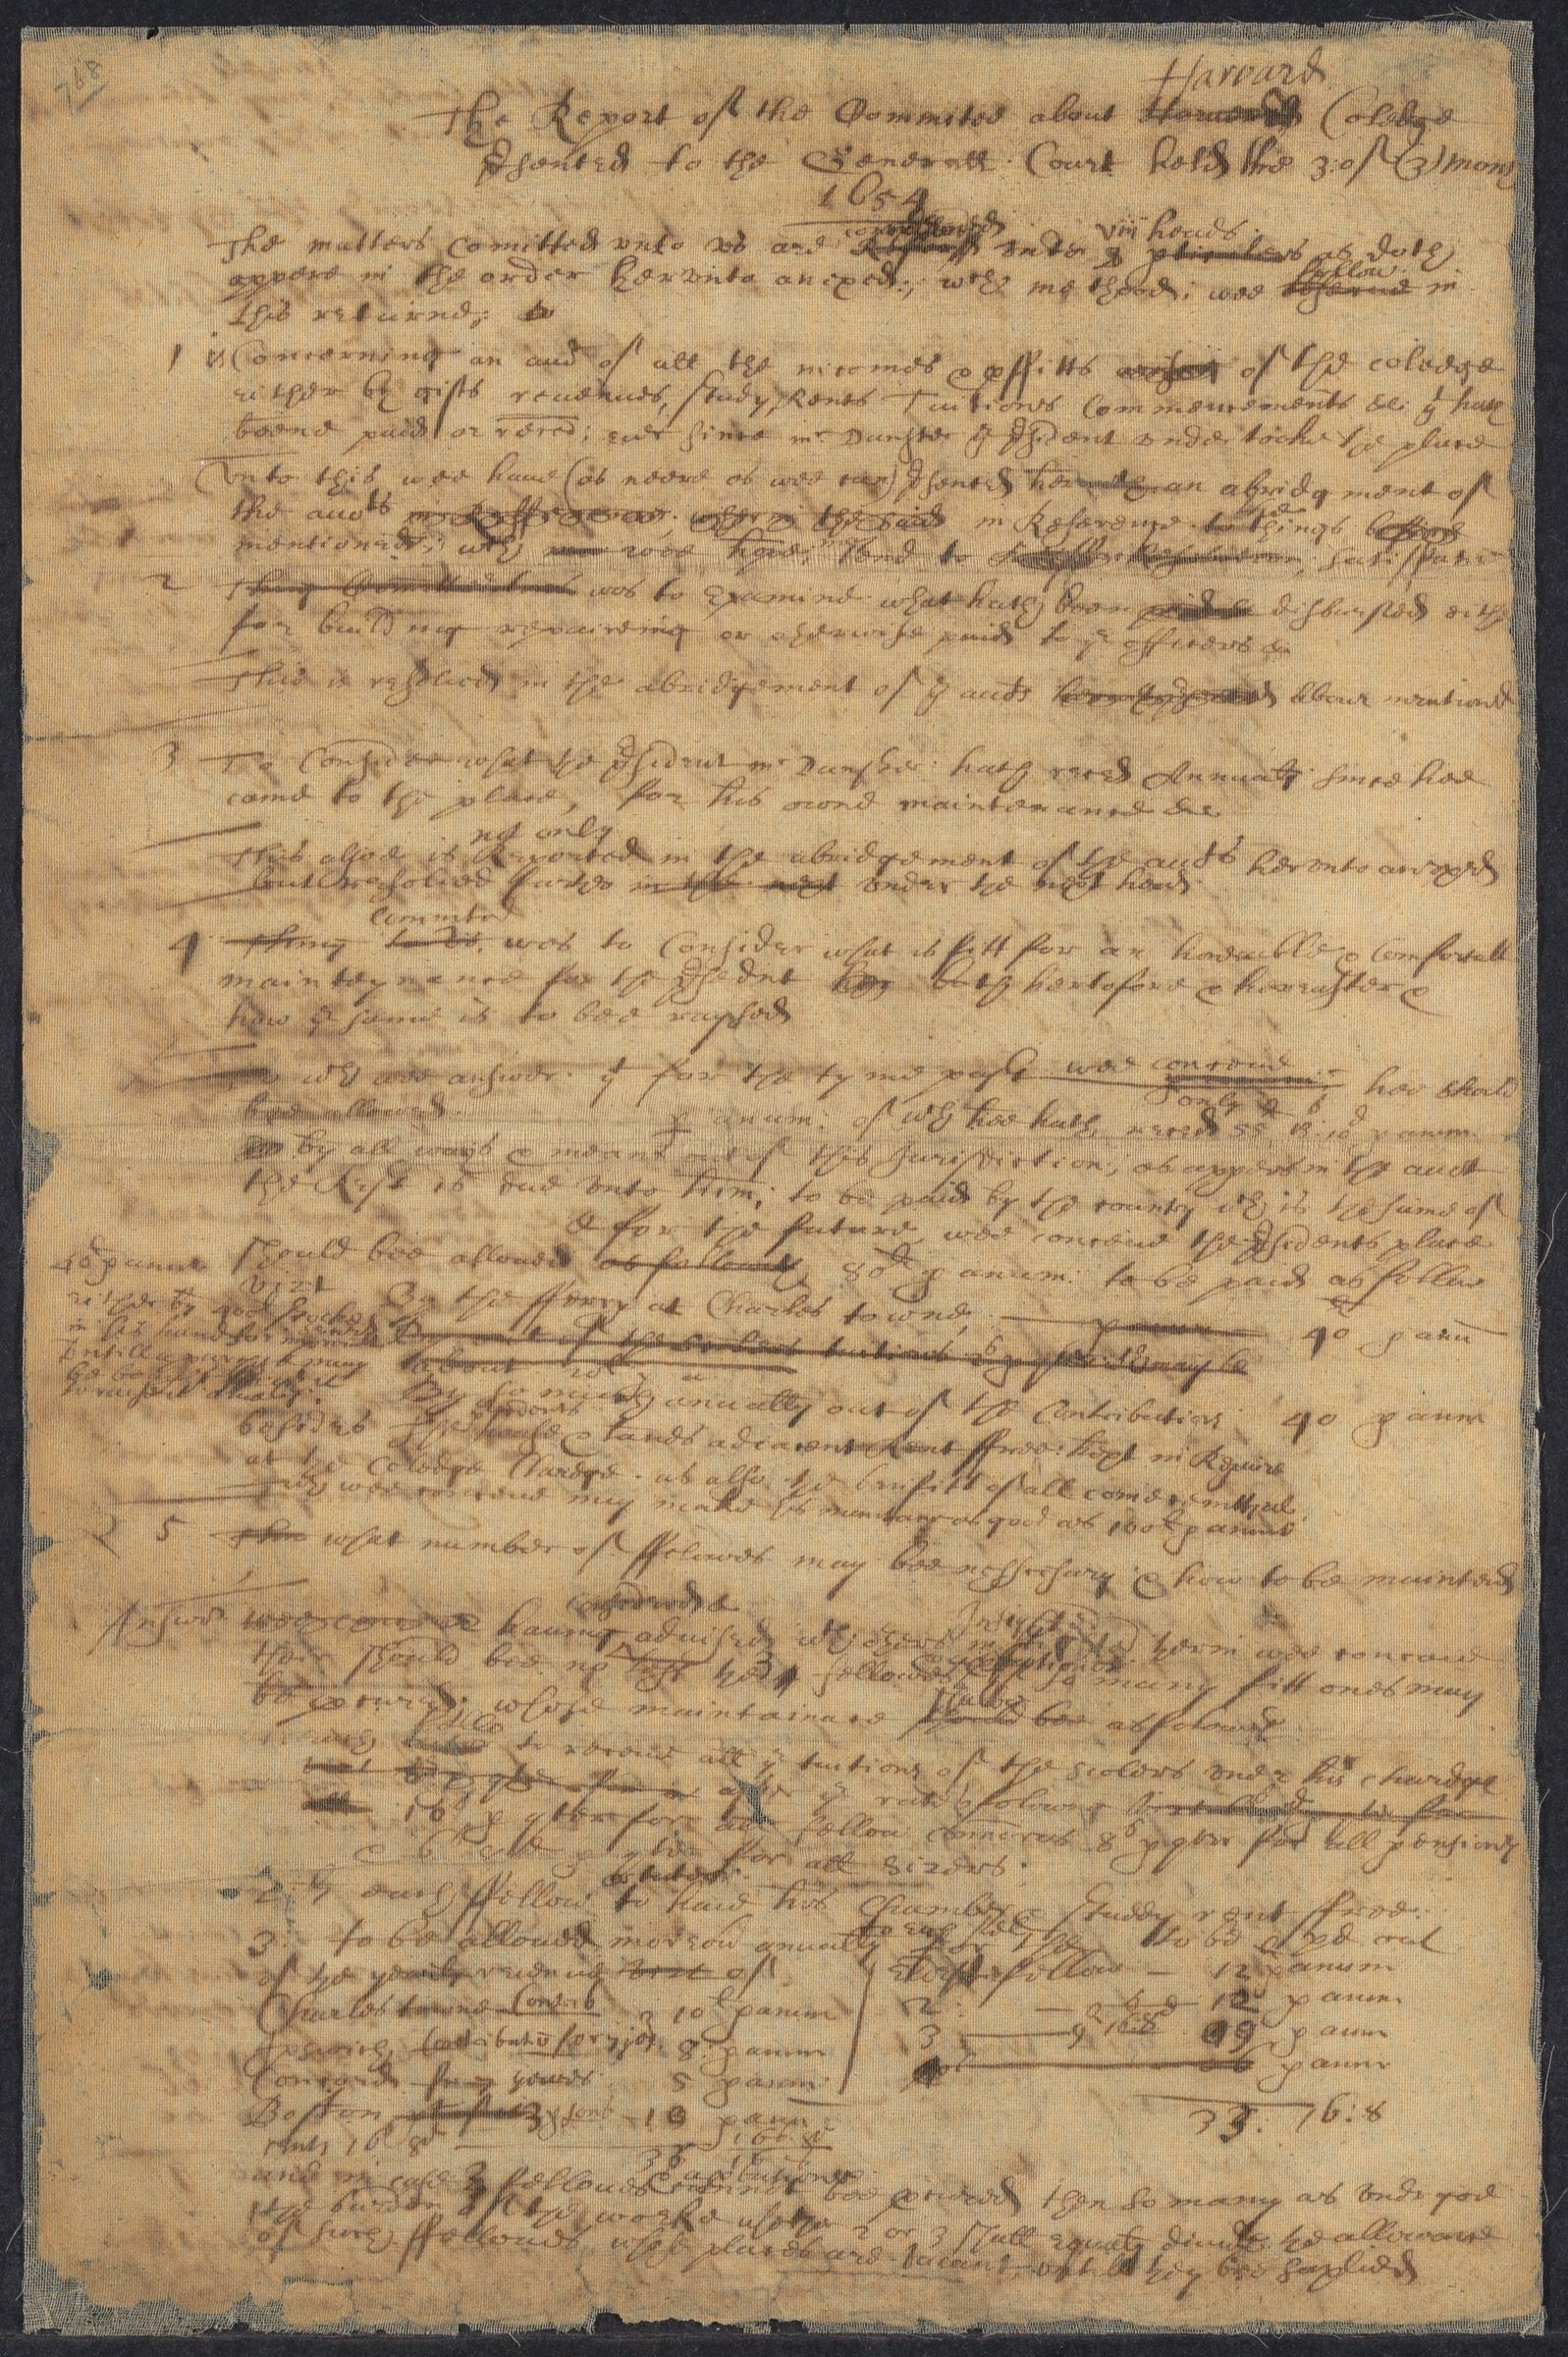 The  report of the committee about Harvard Coledge: presented to the Generall Court held the 3 of (3) month, 1654